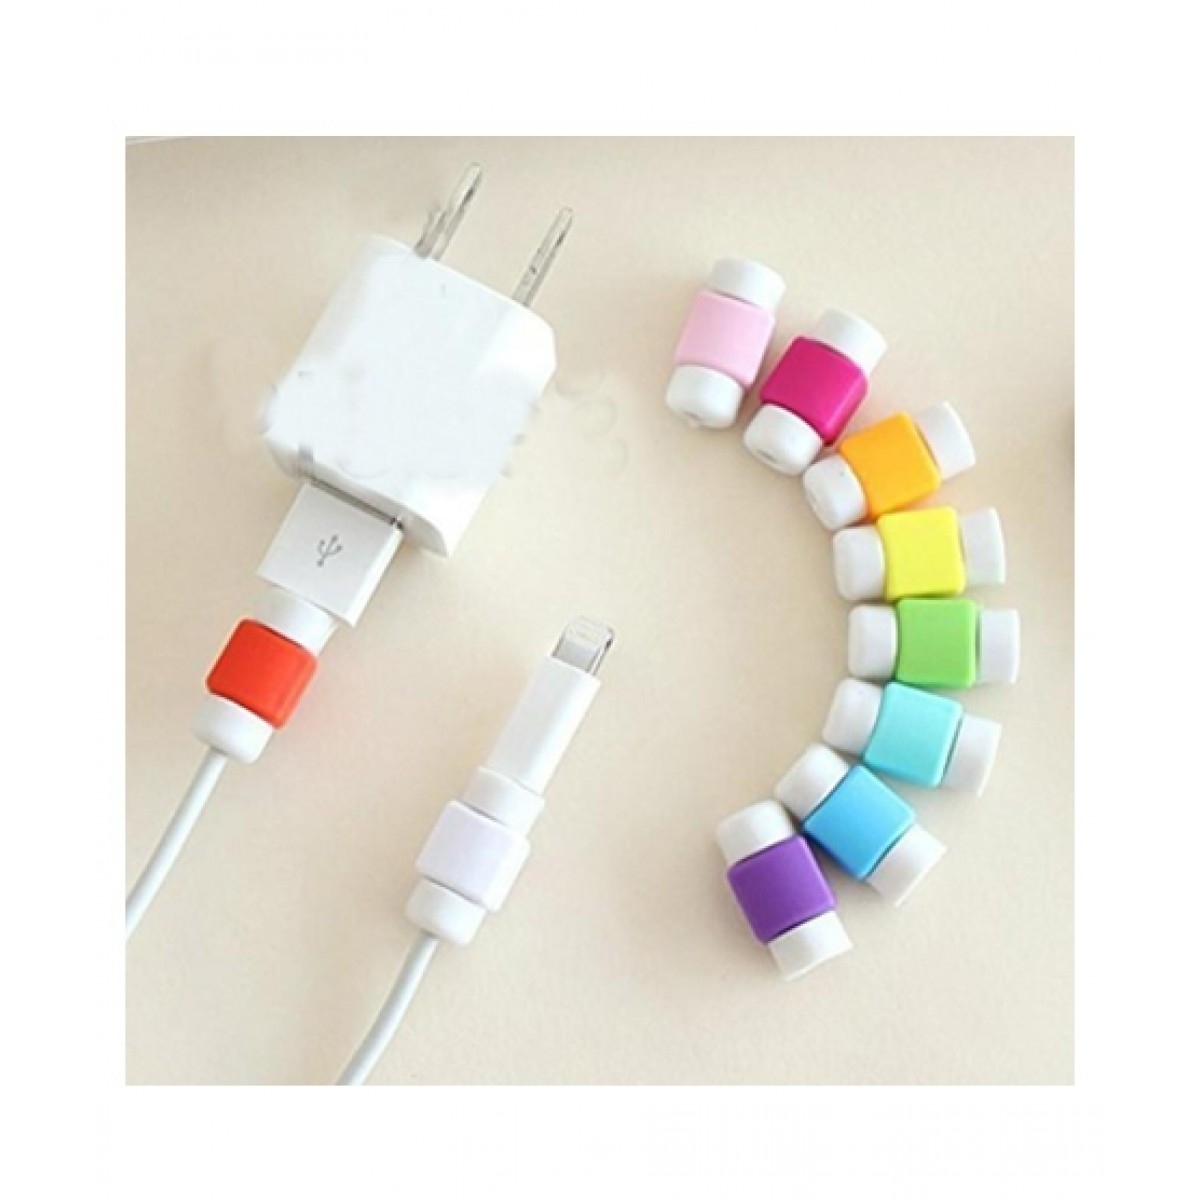 BazingaPk Lightning Data Cable Breakage Protector For iPhone - Pair